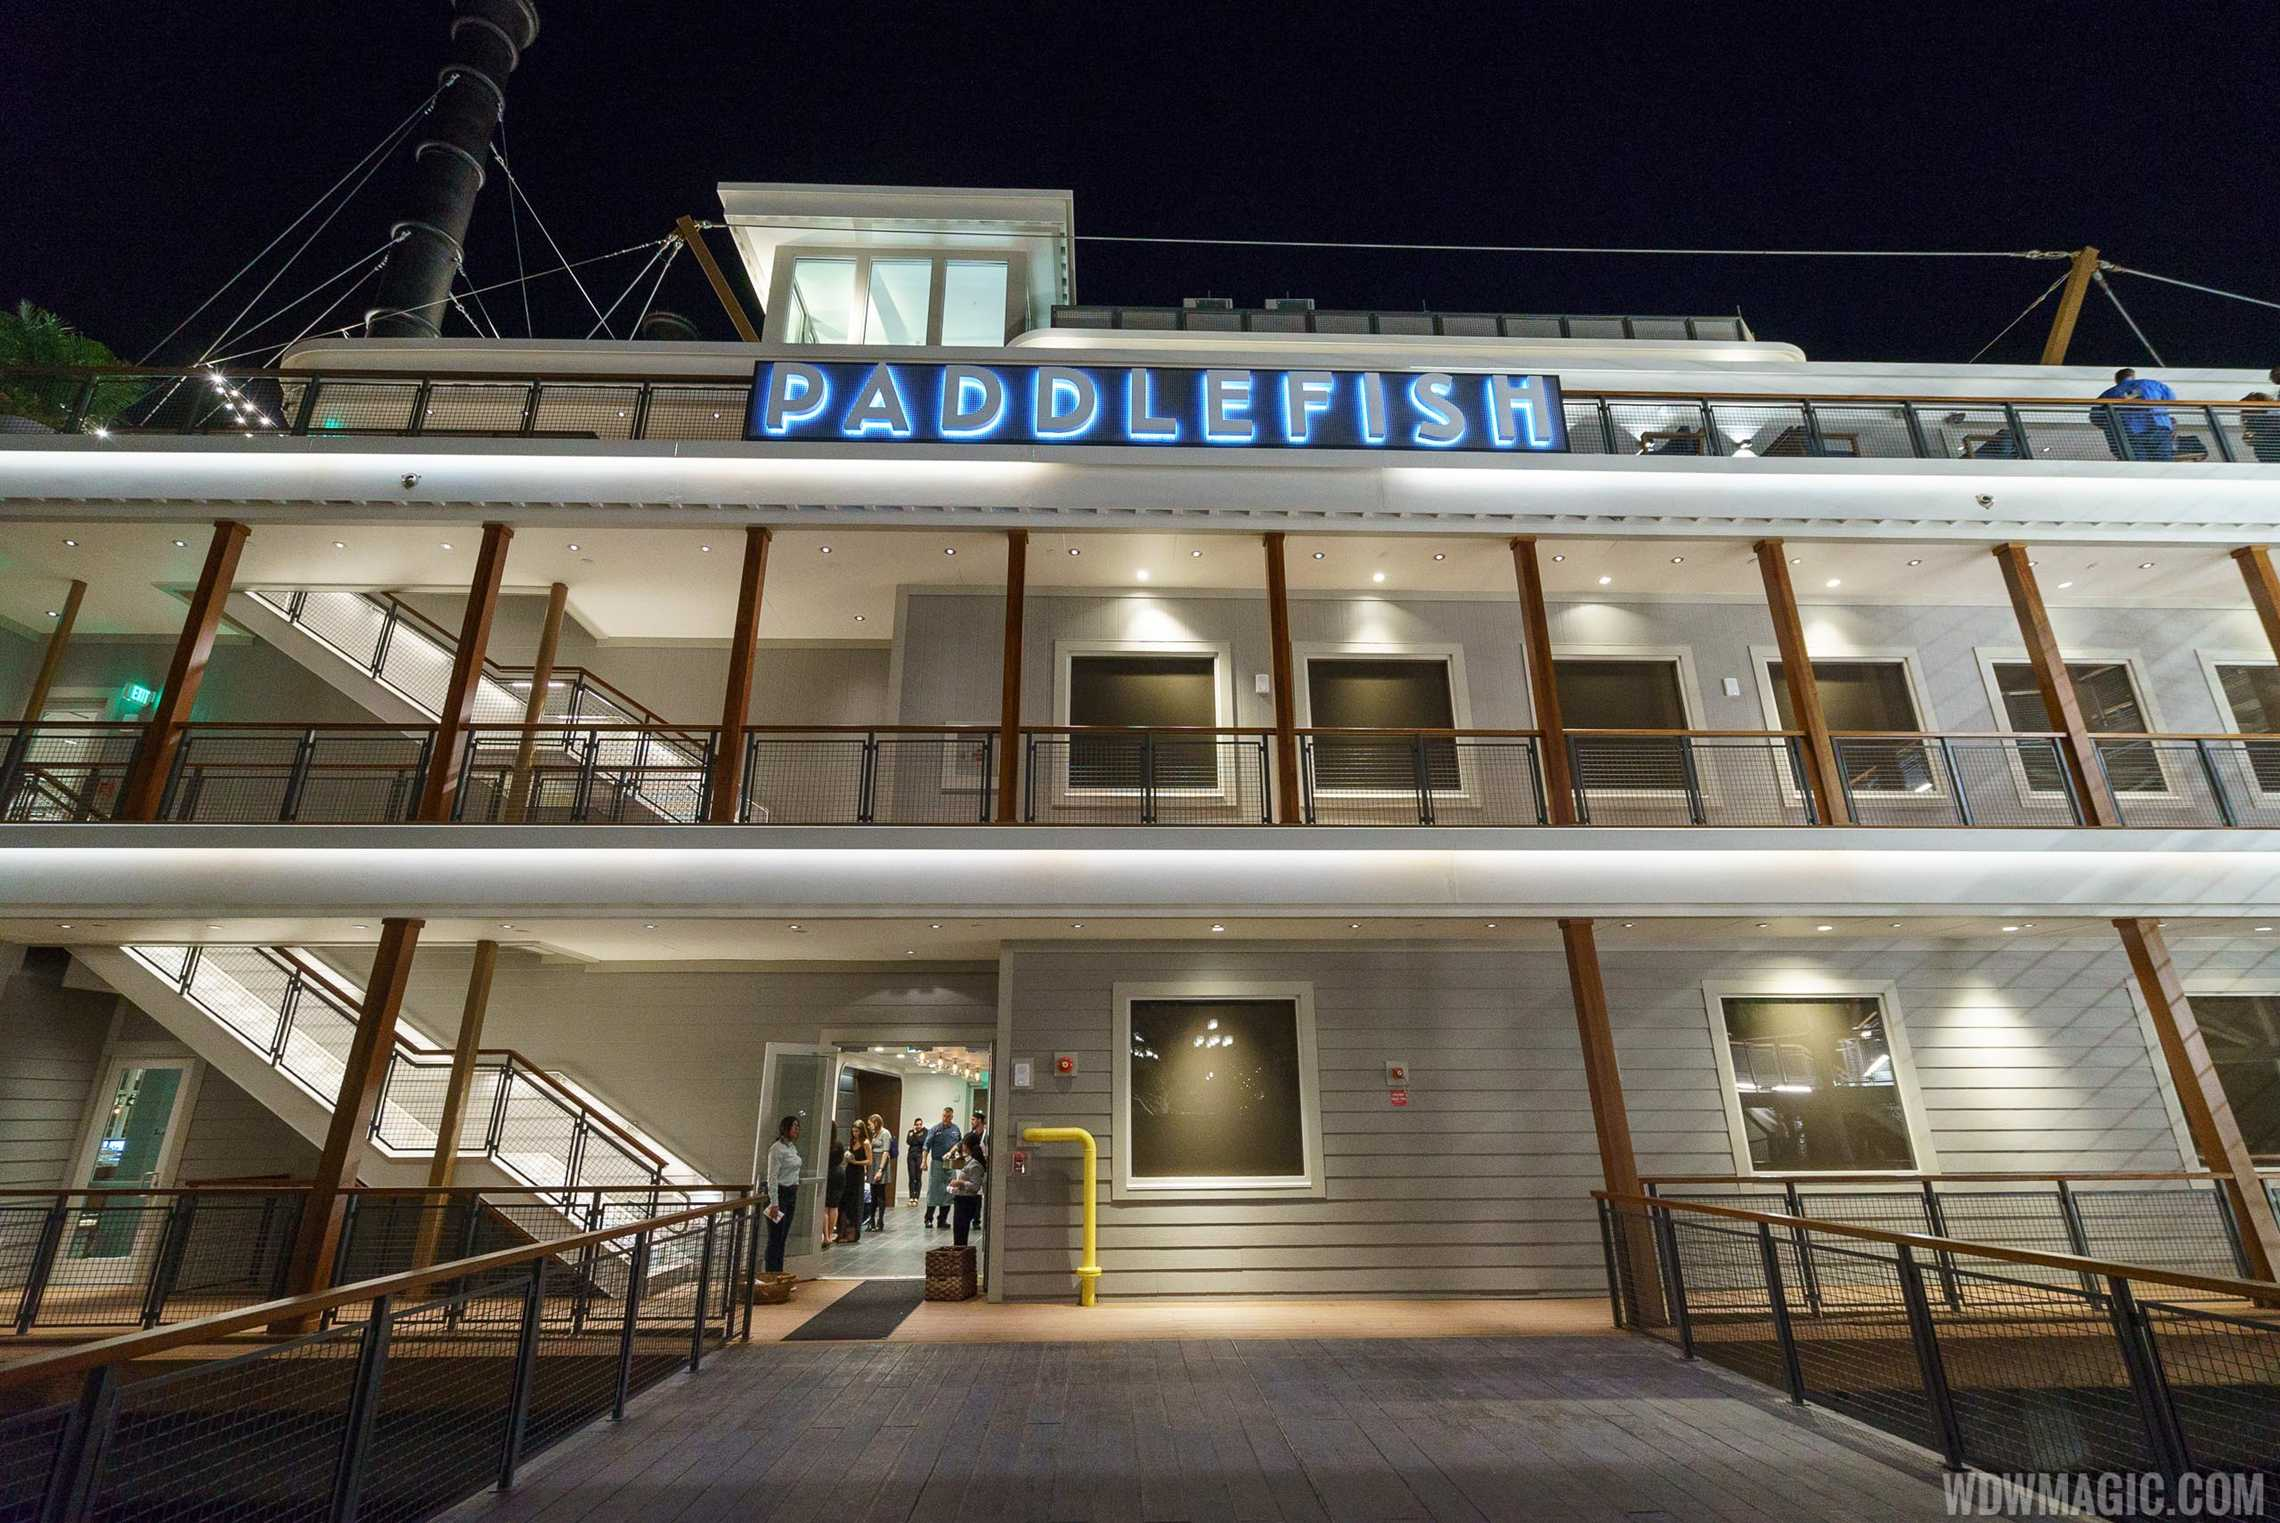 Paddlefish - Main entrance